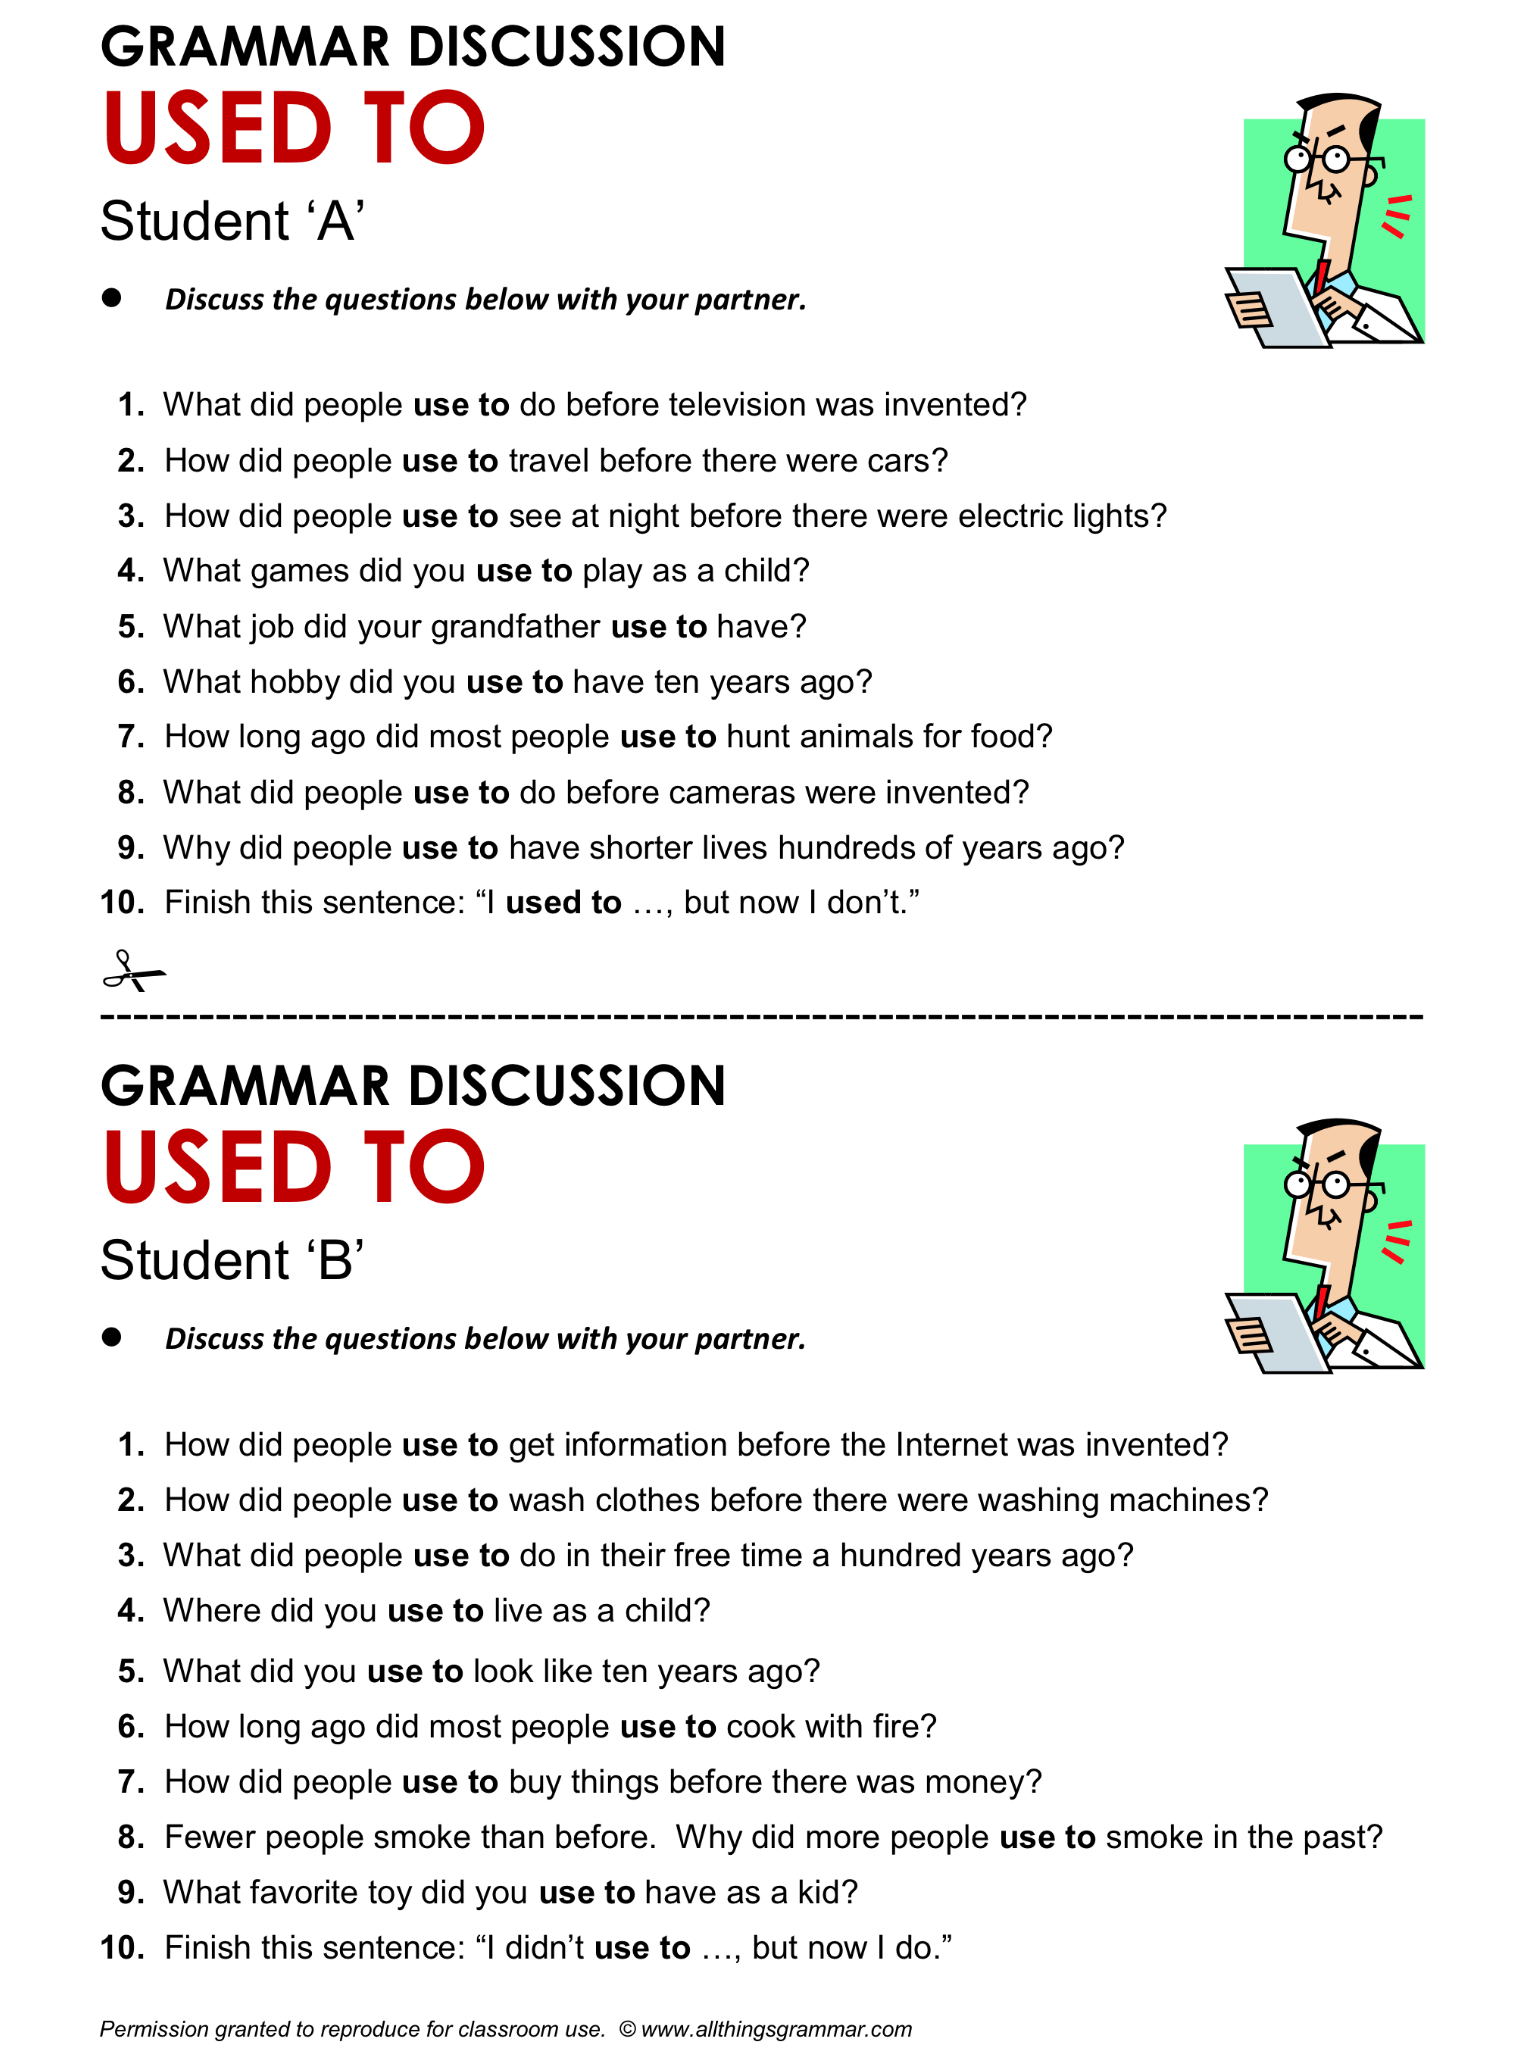 English Grammar Discussion Used To